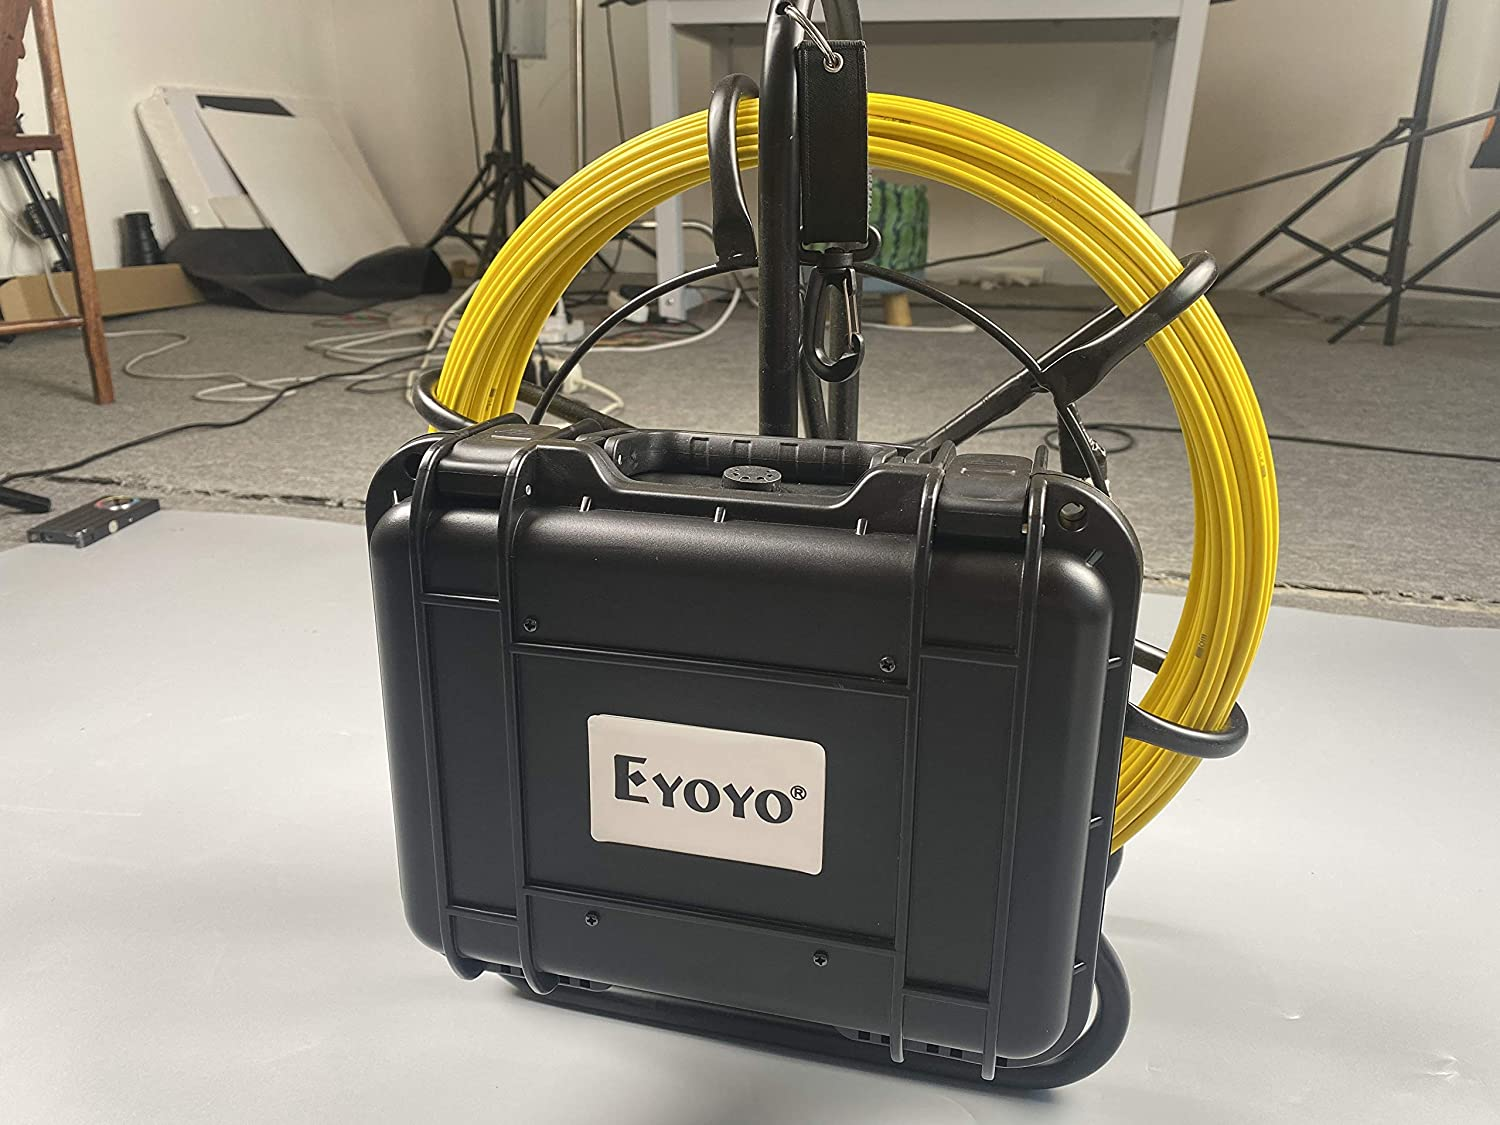 Eyoyo 50M//164FT Pipe Sewer Inspection Camera Portable Underwater Industrial Drain Cam Wall Video Plumbing System with 9 Inch LCD Monitor 1000TVL DVR Recorder Snake Cam with 8GB SD Card Included